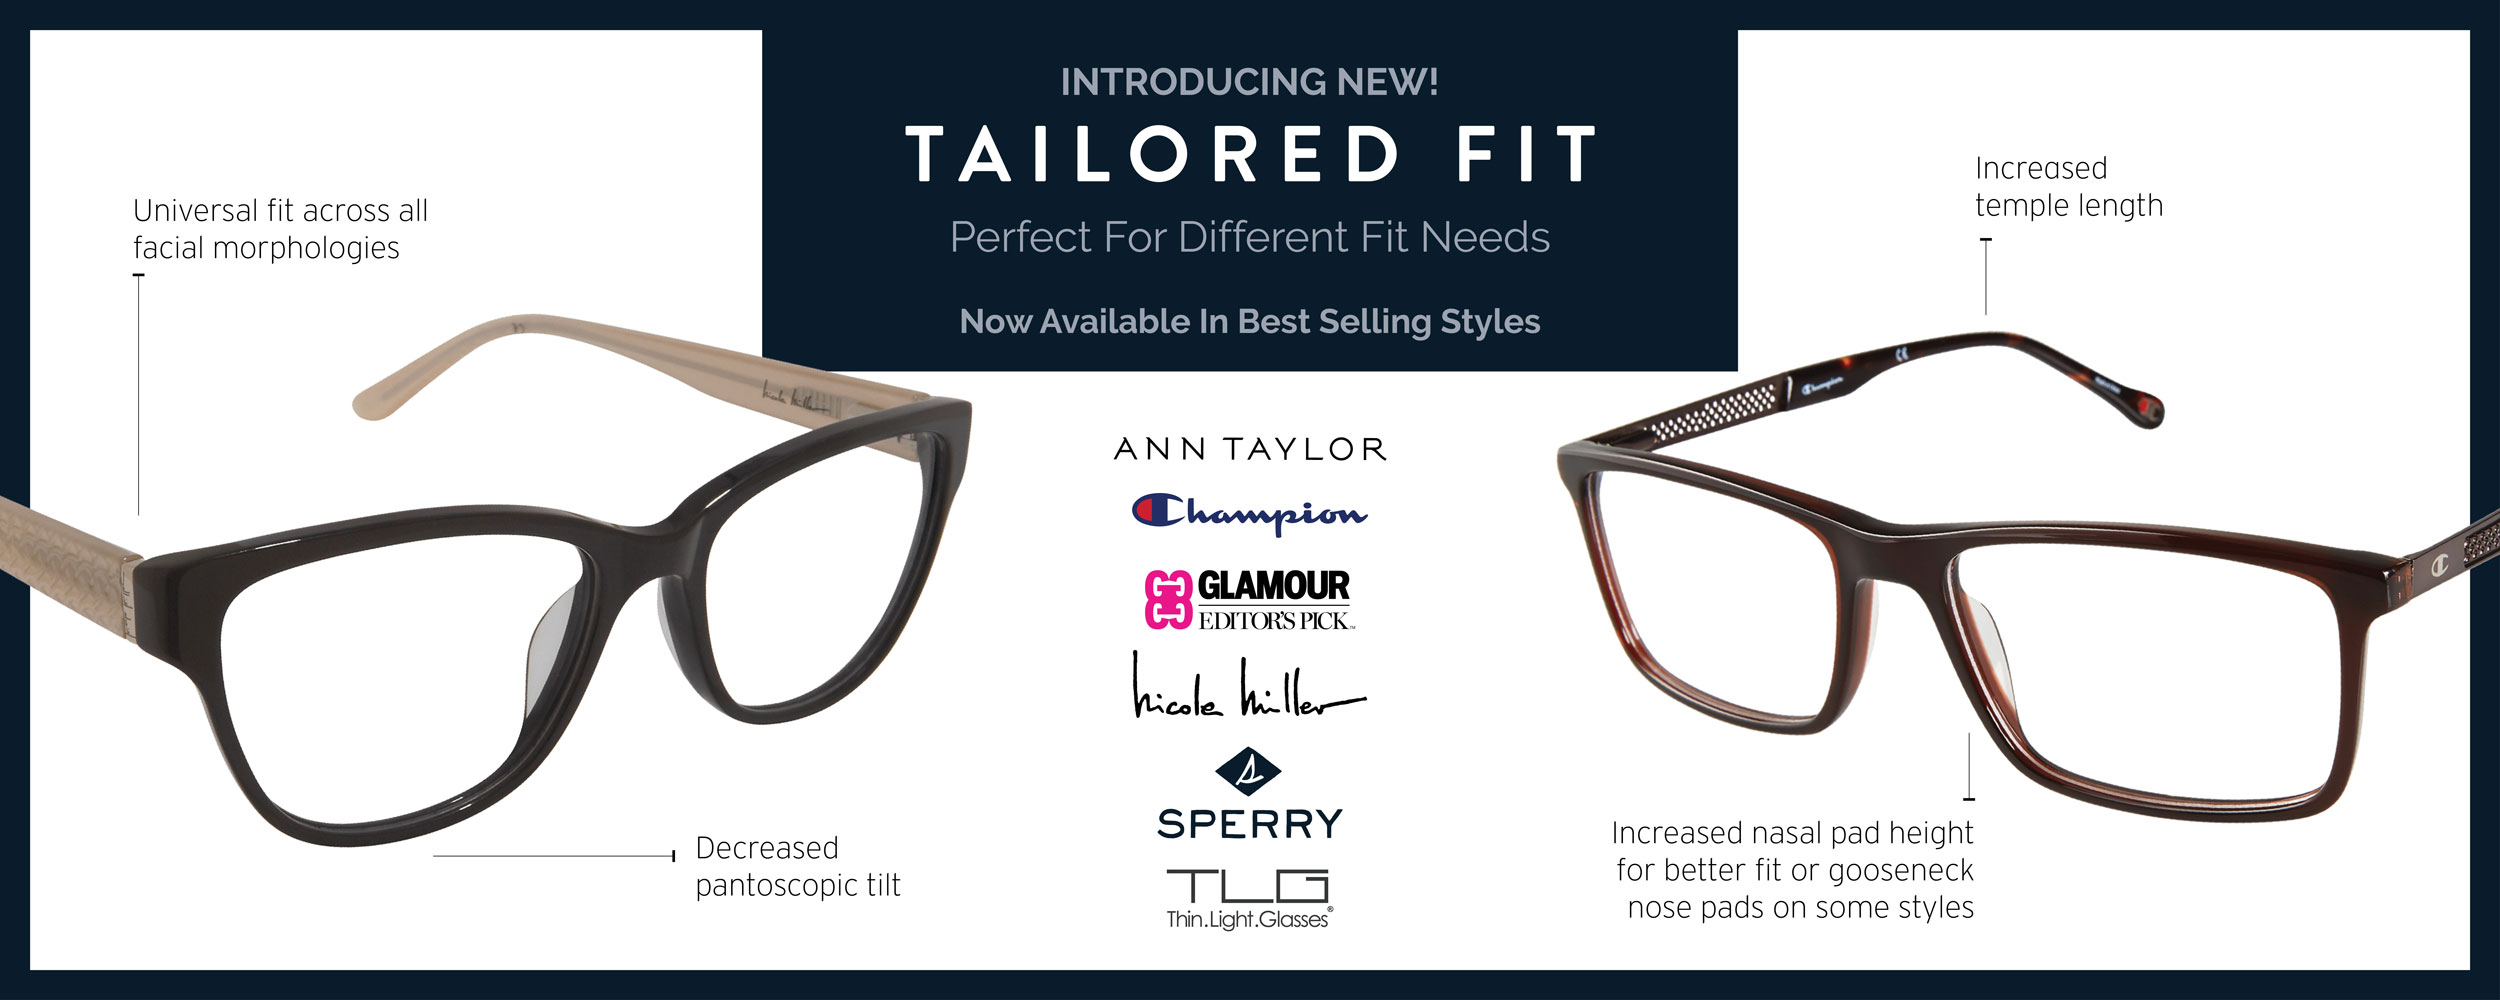 Introducing New! Tailored Fit. Perfect For Different Fit Needs. Now Available In Best Selling Styles.